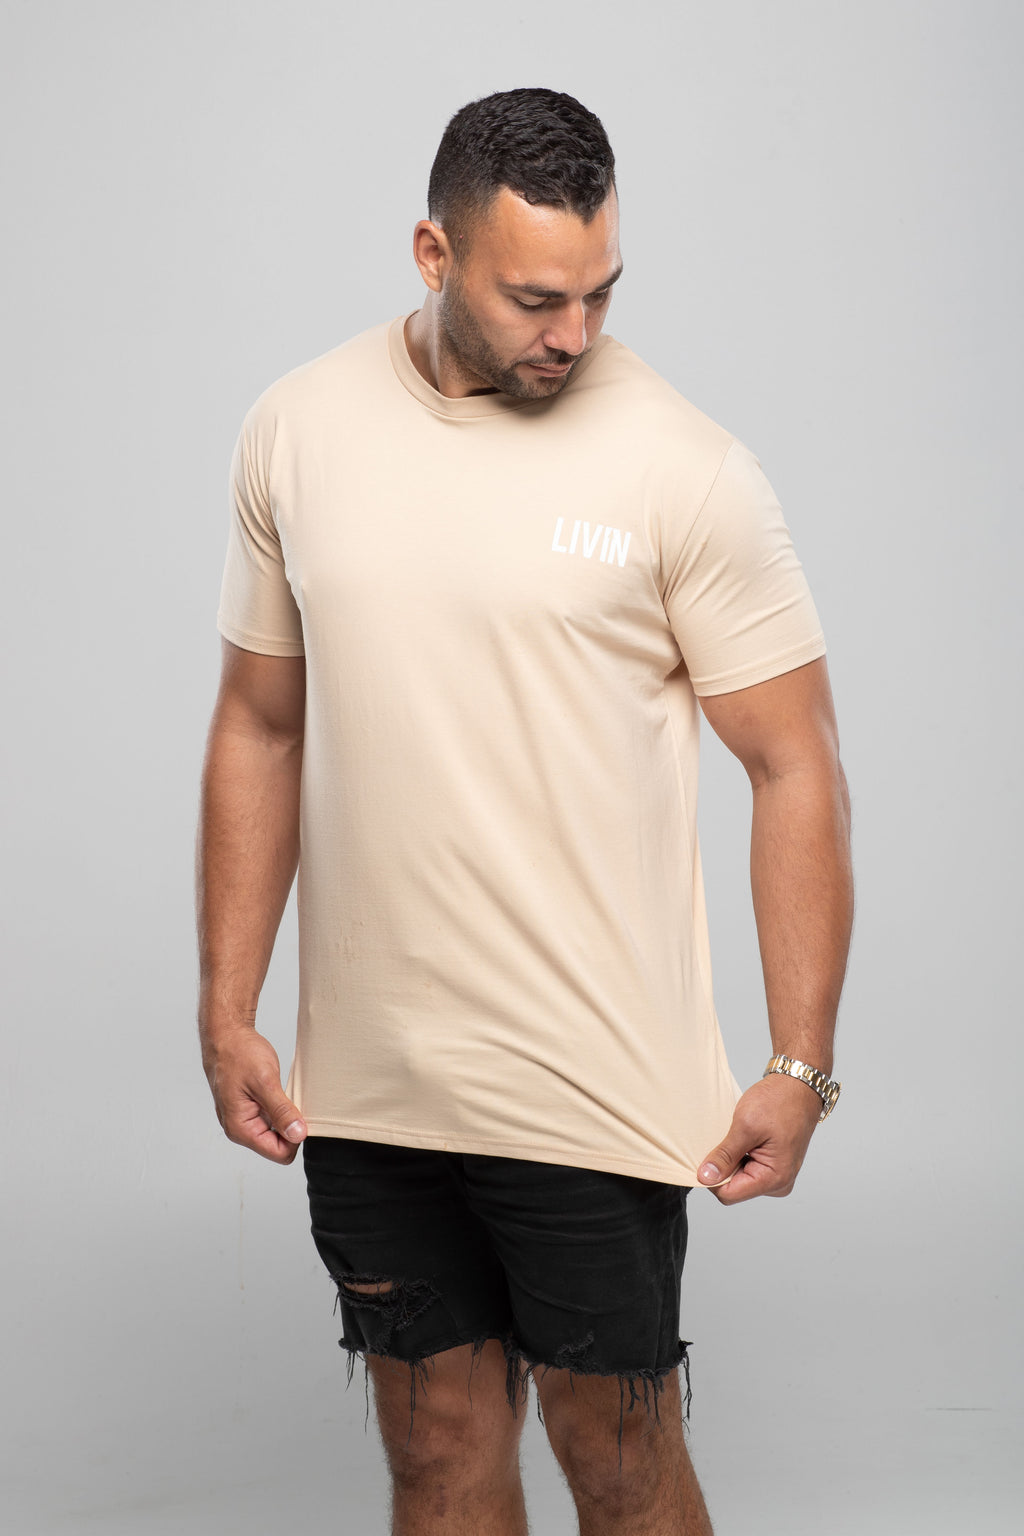 Mindful Tee by LIVIN